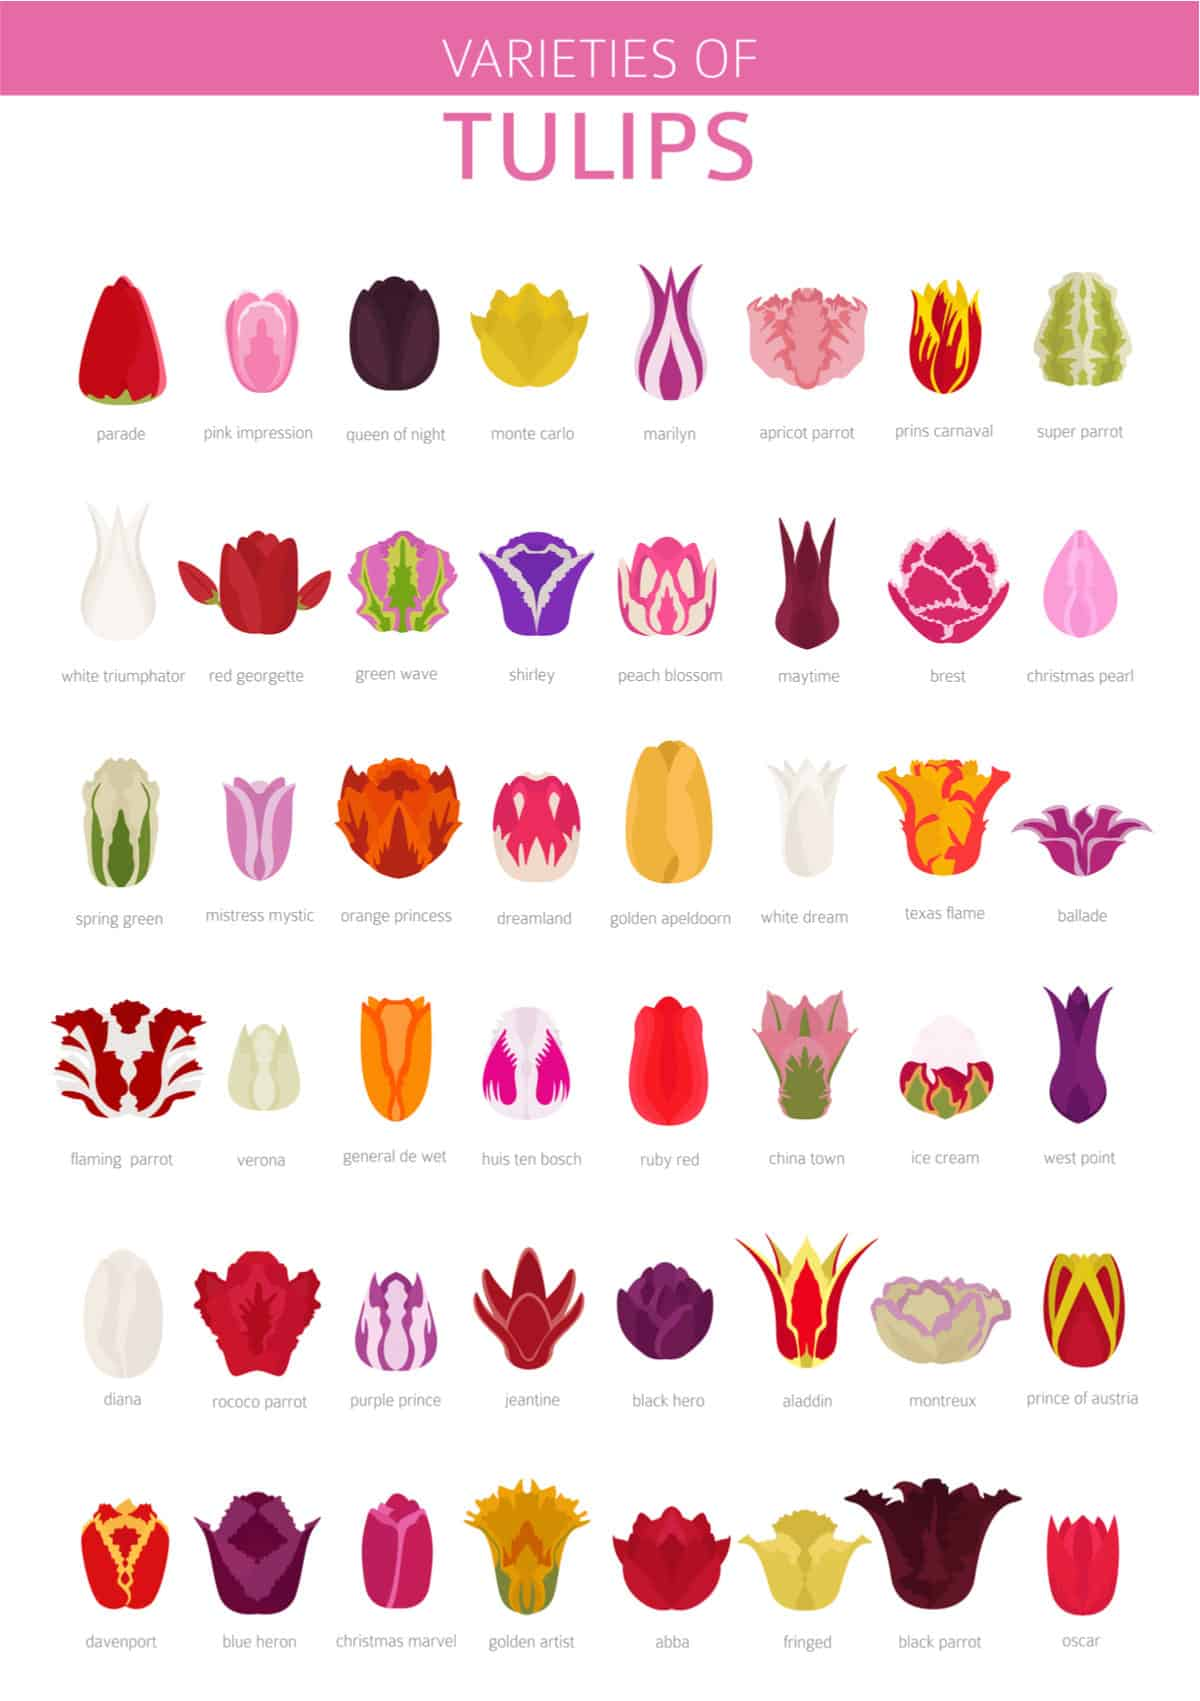 Chart setting out the different tulip types and varieties